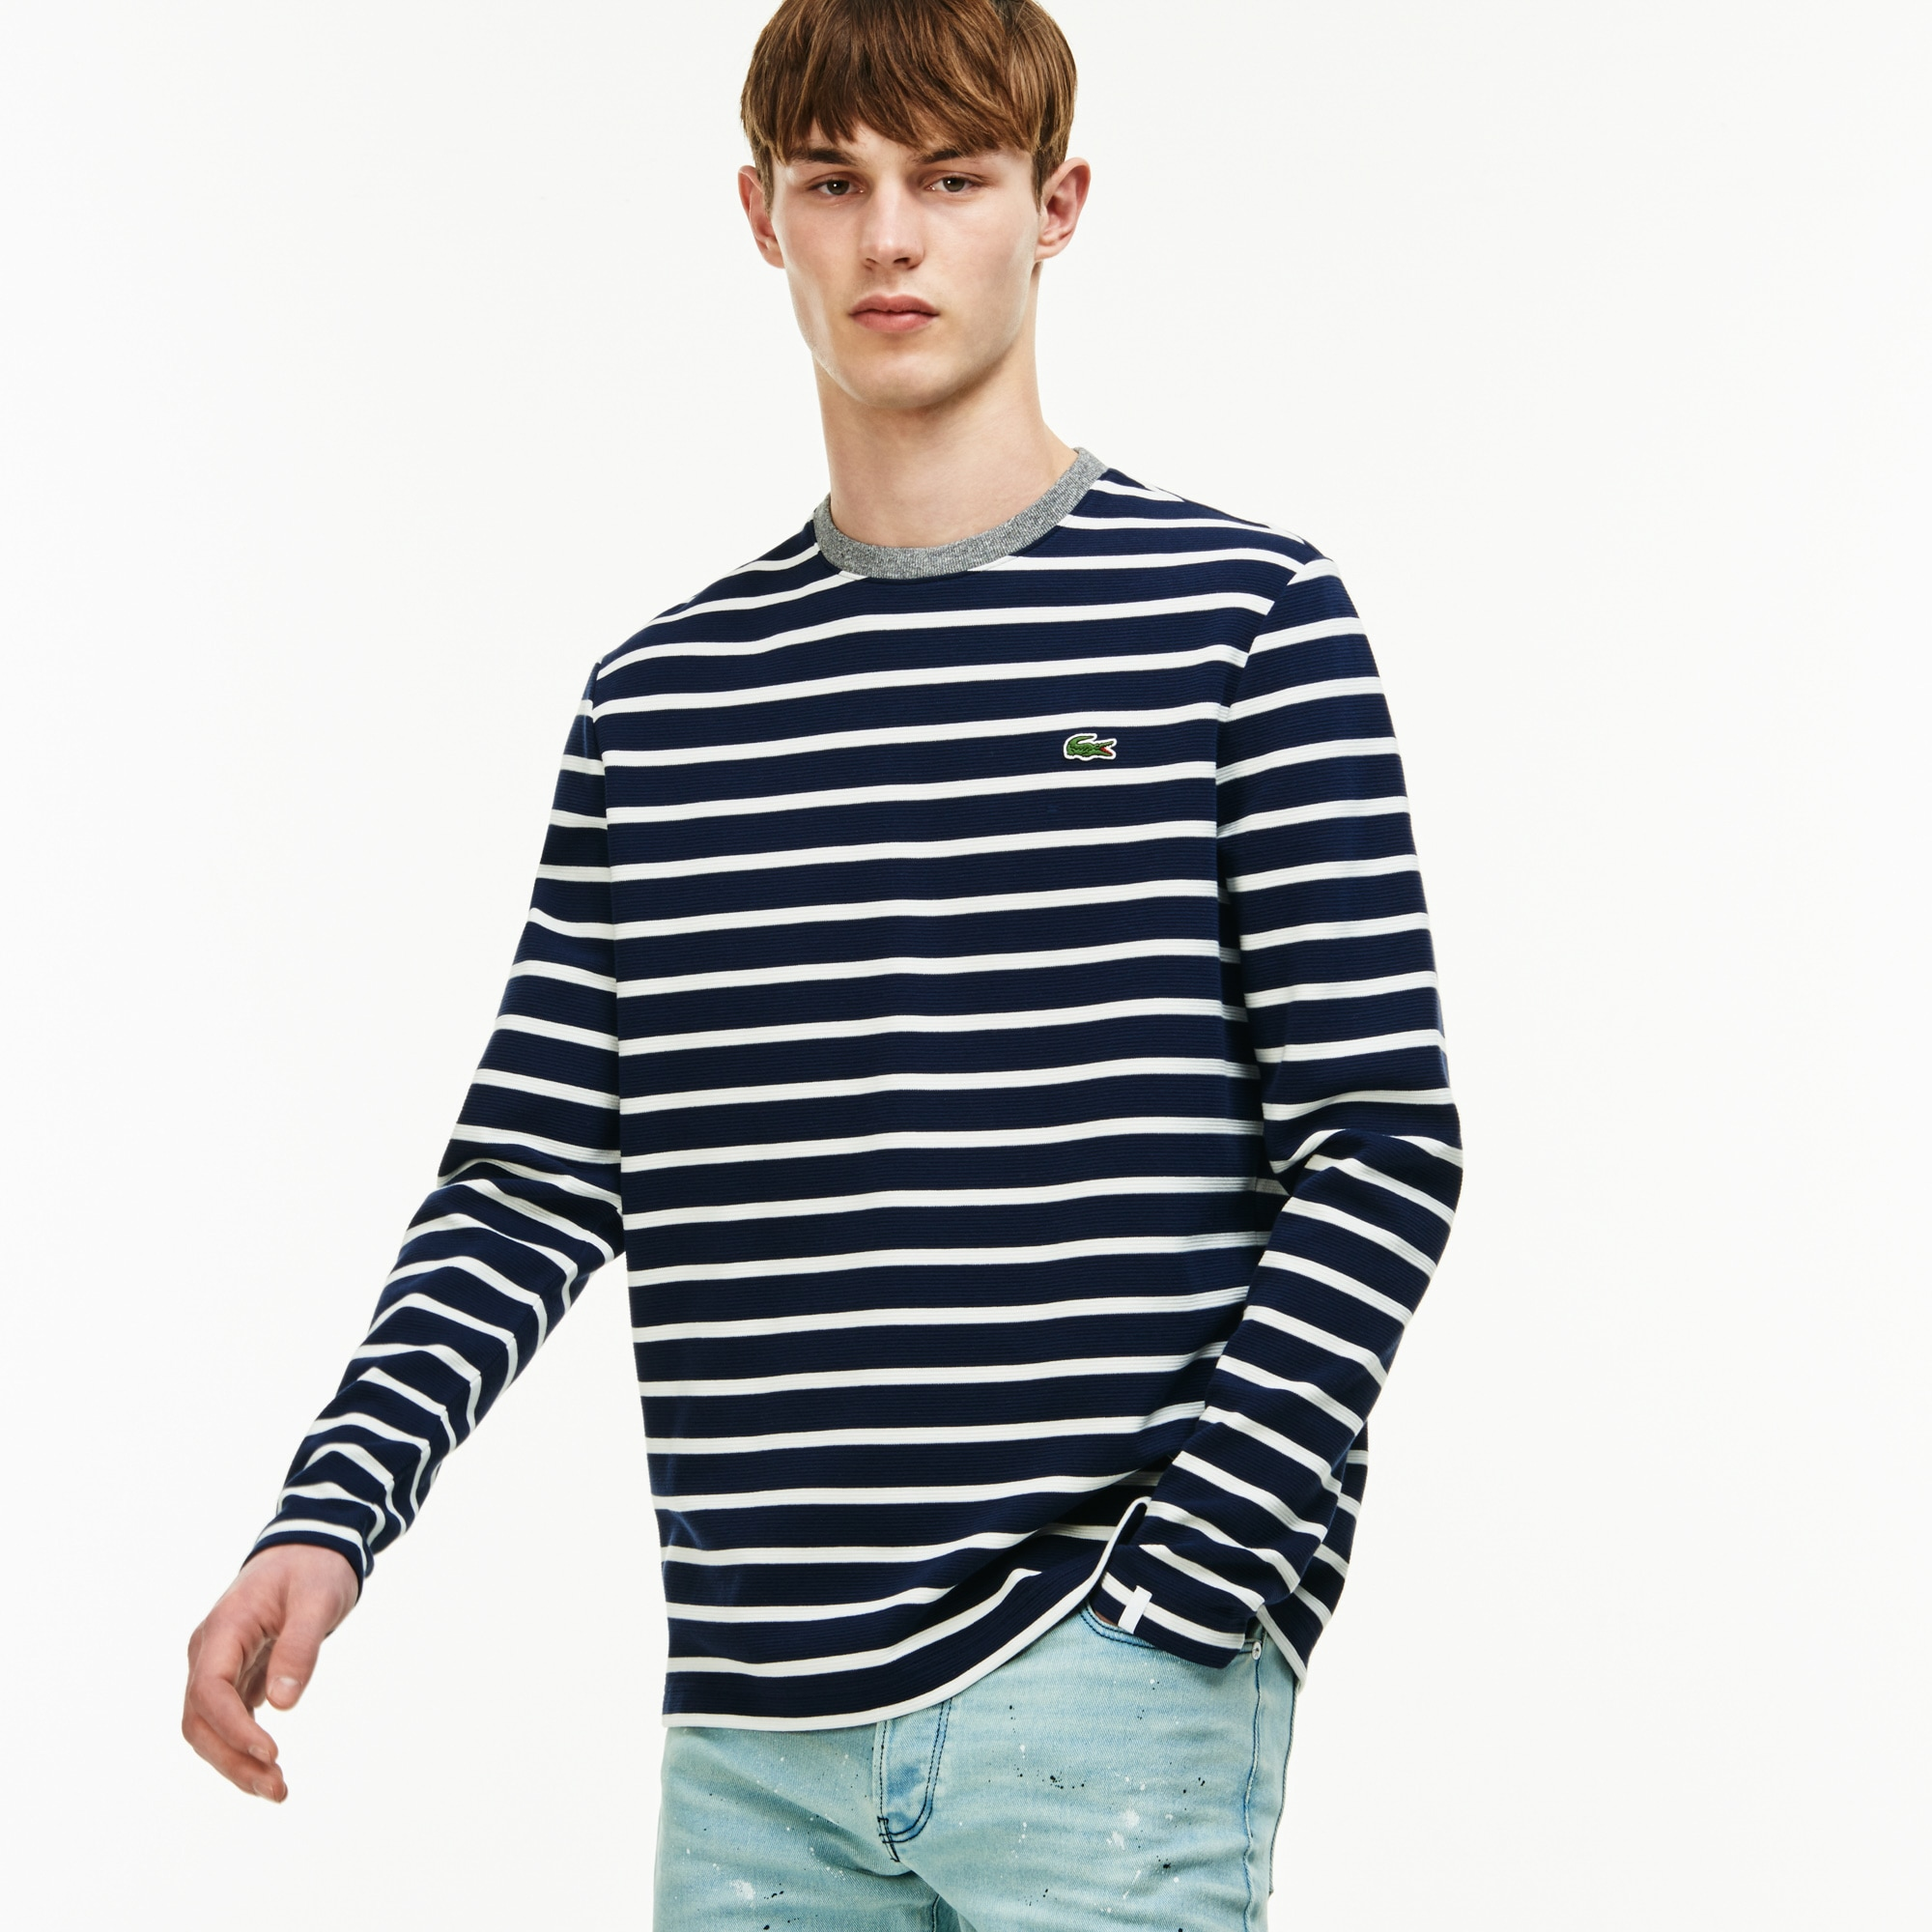 Men's  LIVE Striped Ottoman Cotton T-shirt